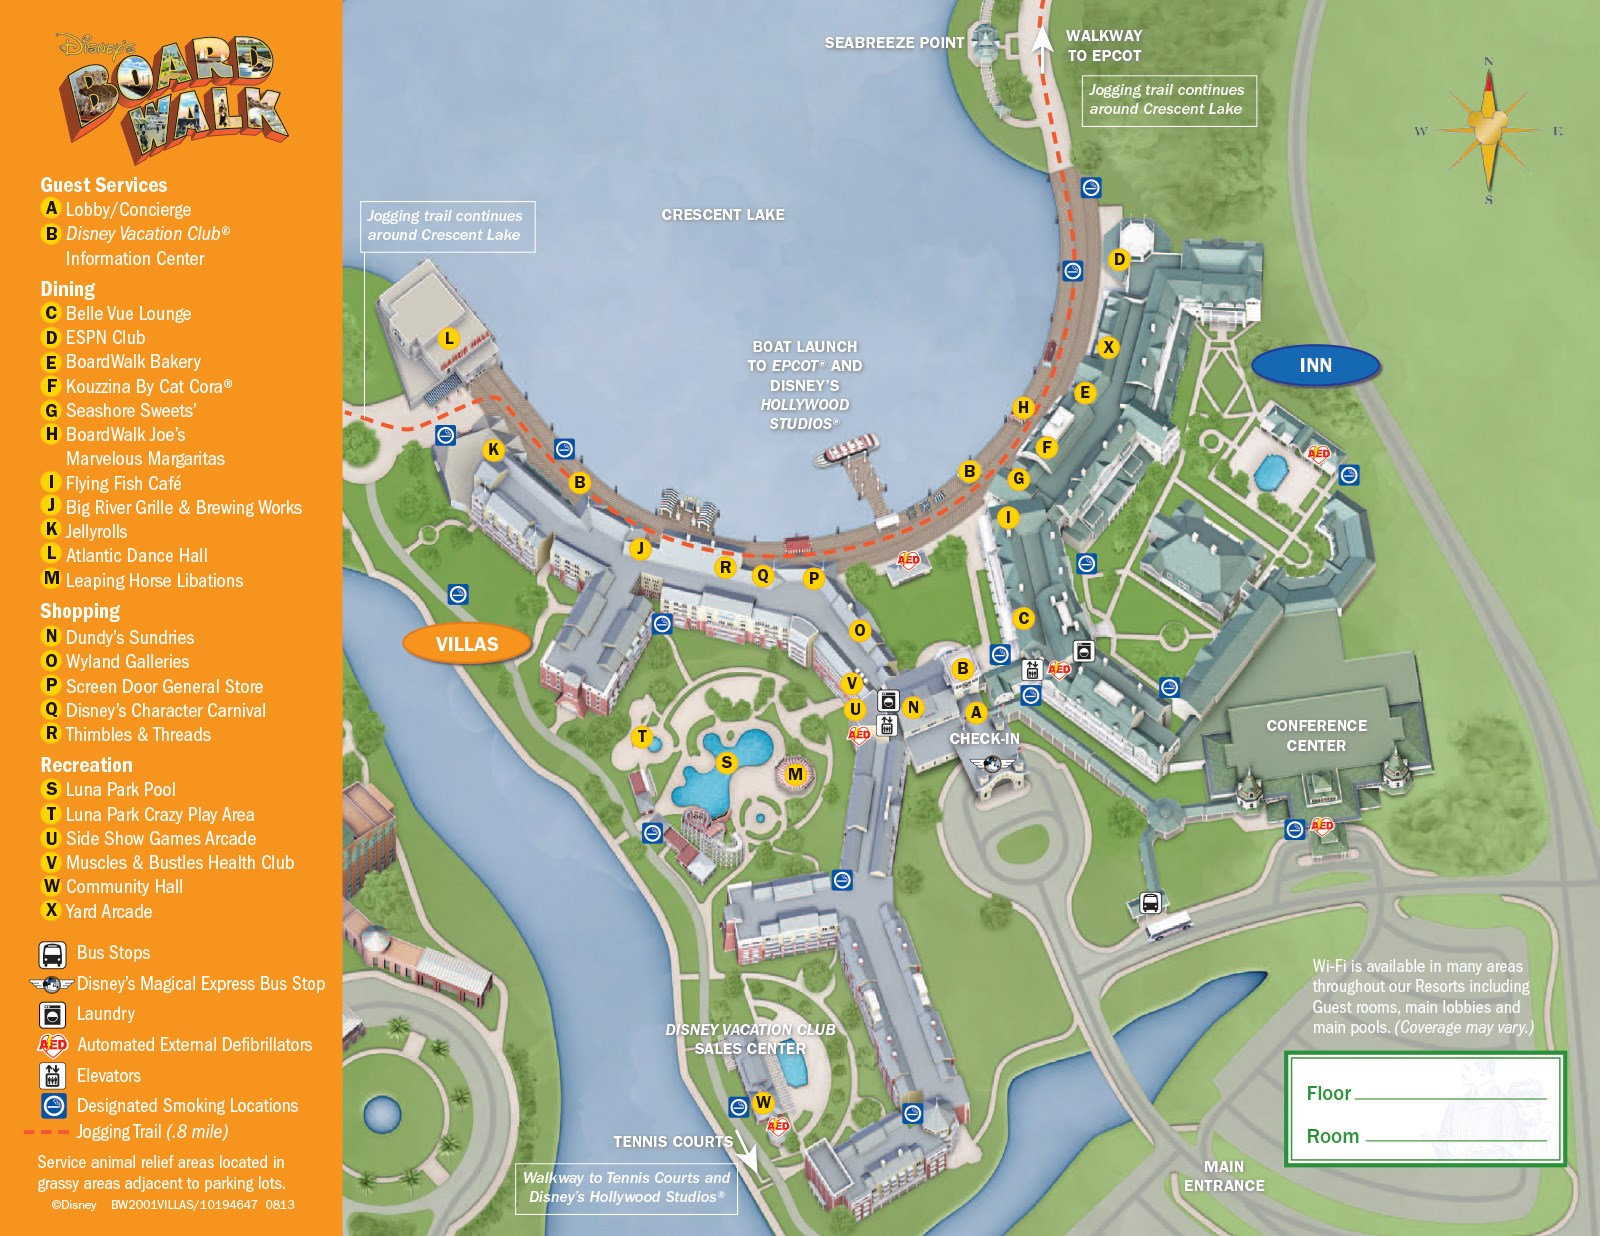 New look 2013 Resort Hotel maps